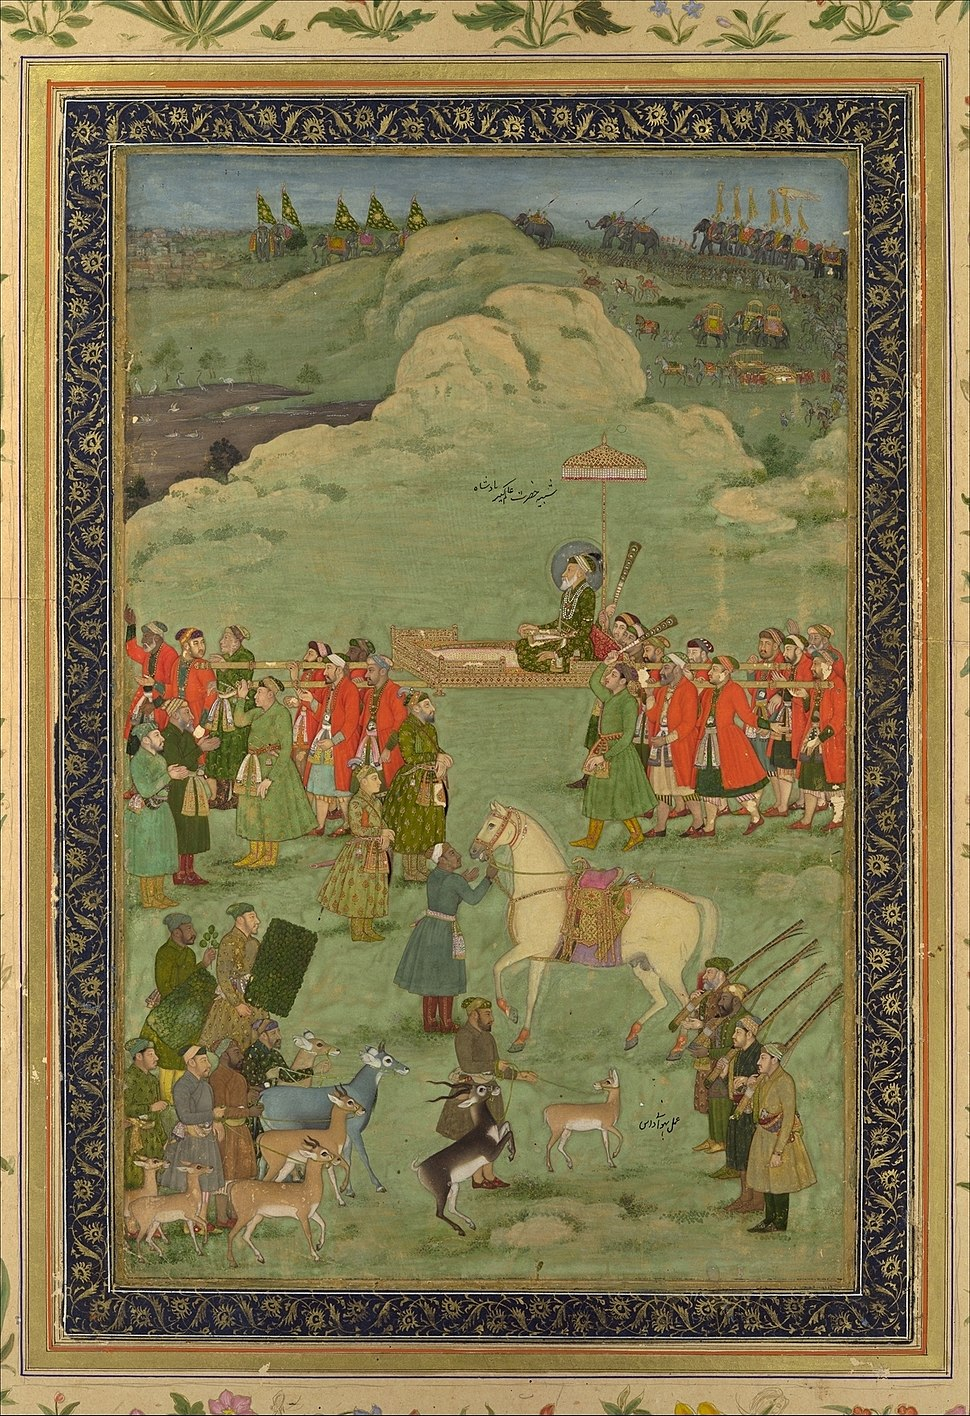 Bhavanidas. The Emperor Aurangzeb Carried on a Palanquin ca. 1705–20 Metripolitan Museum of Art.